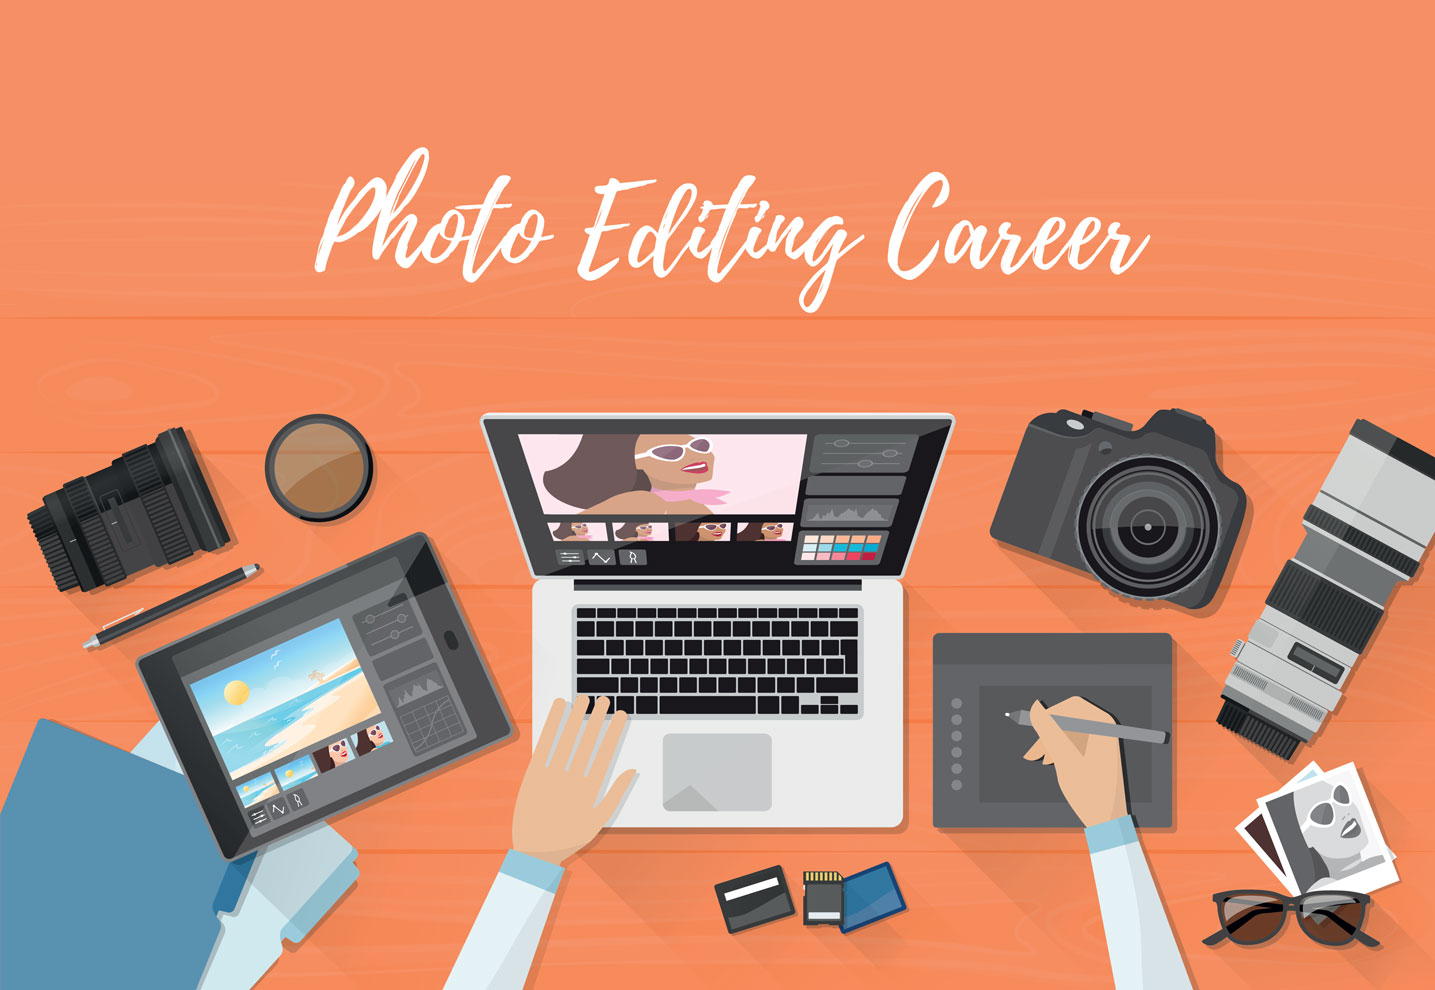 Photo Editing Career